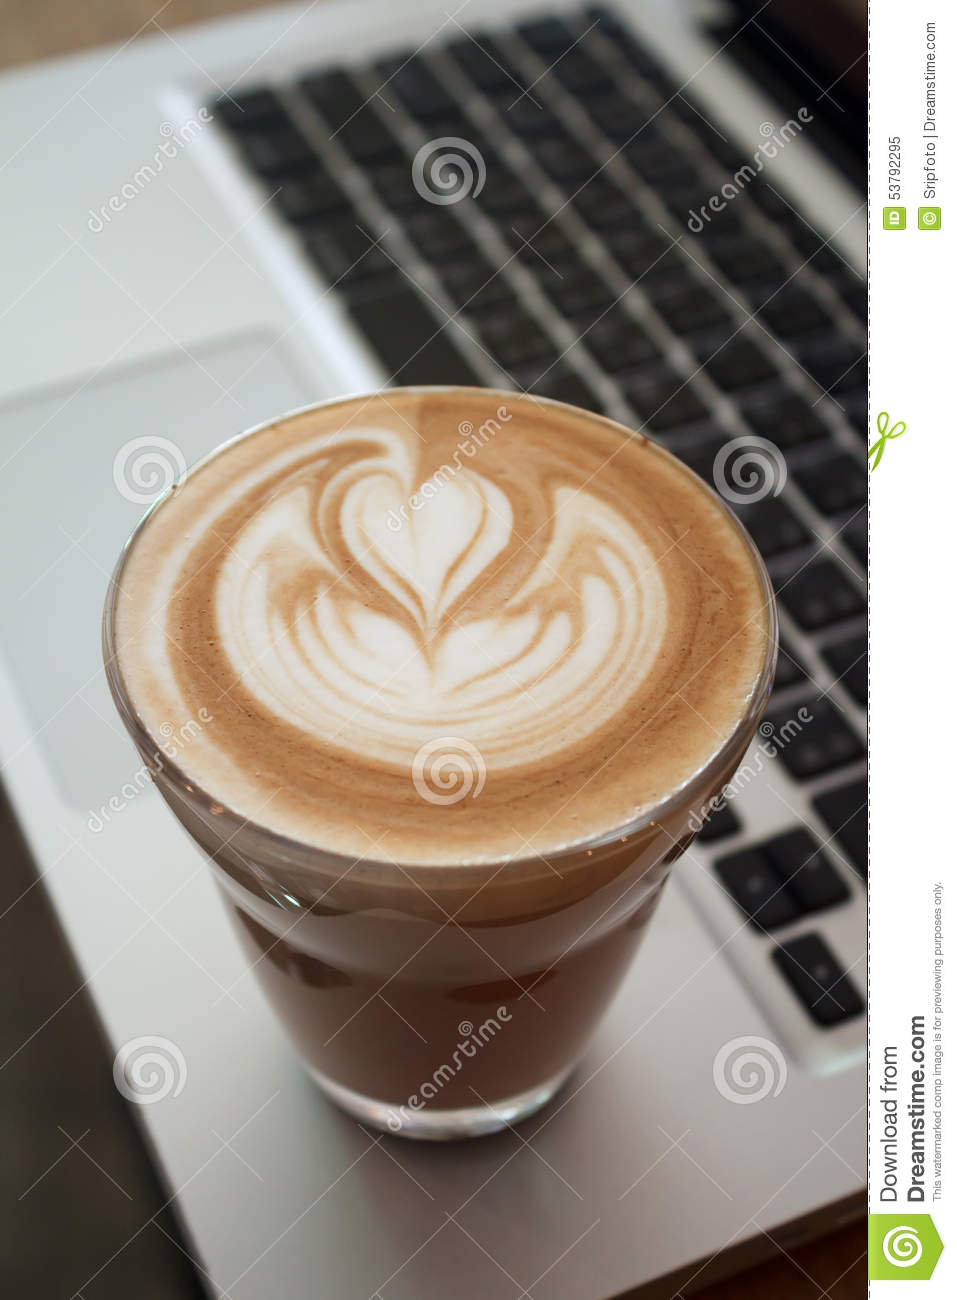 A Cup of latte coffee on laptop keyboard